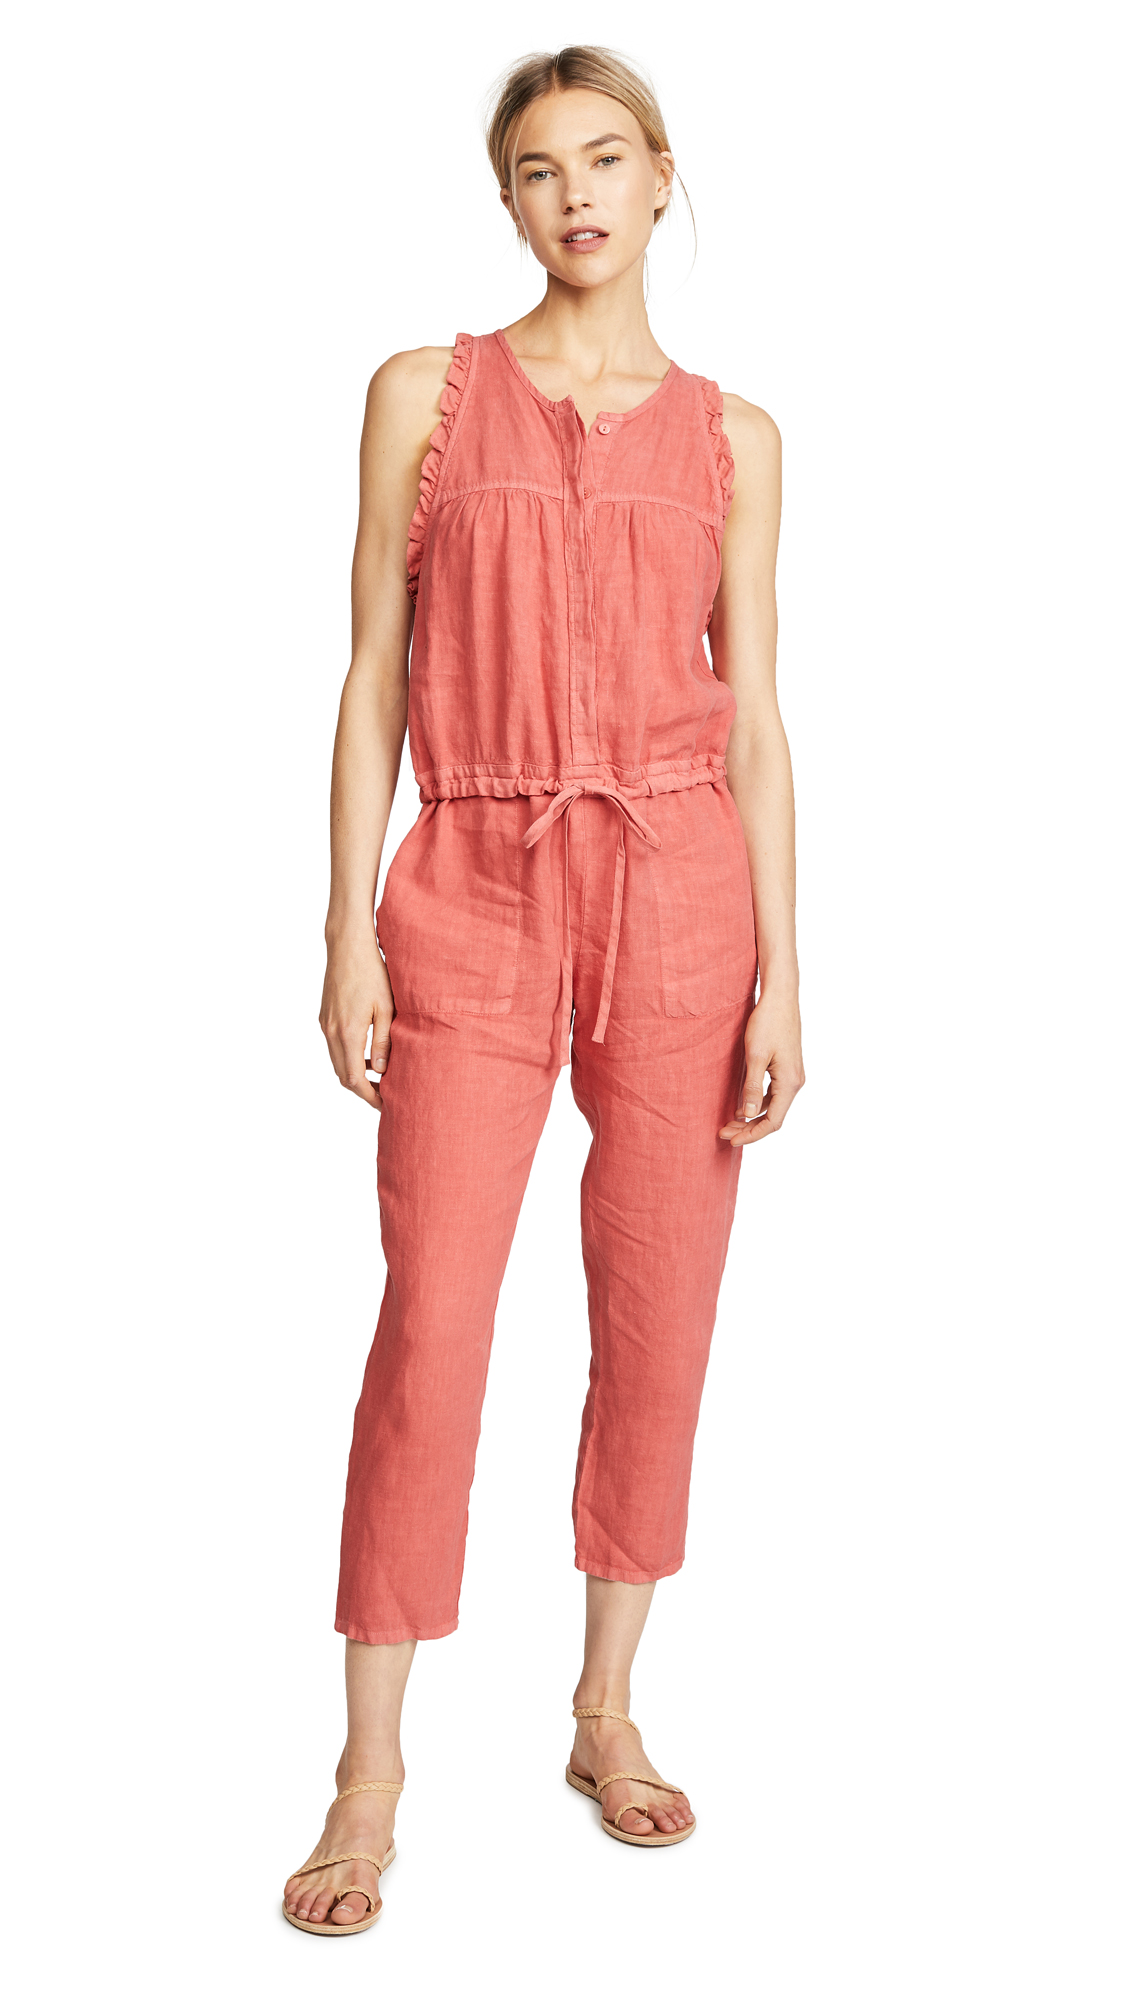 Enza Costa Sleeveless Ruffle Jumpsuit In Persimmon